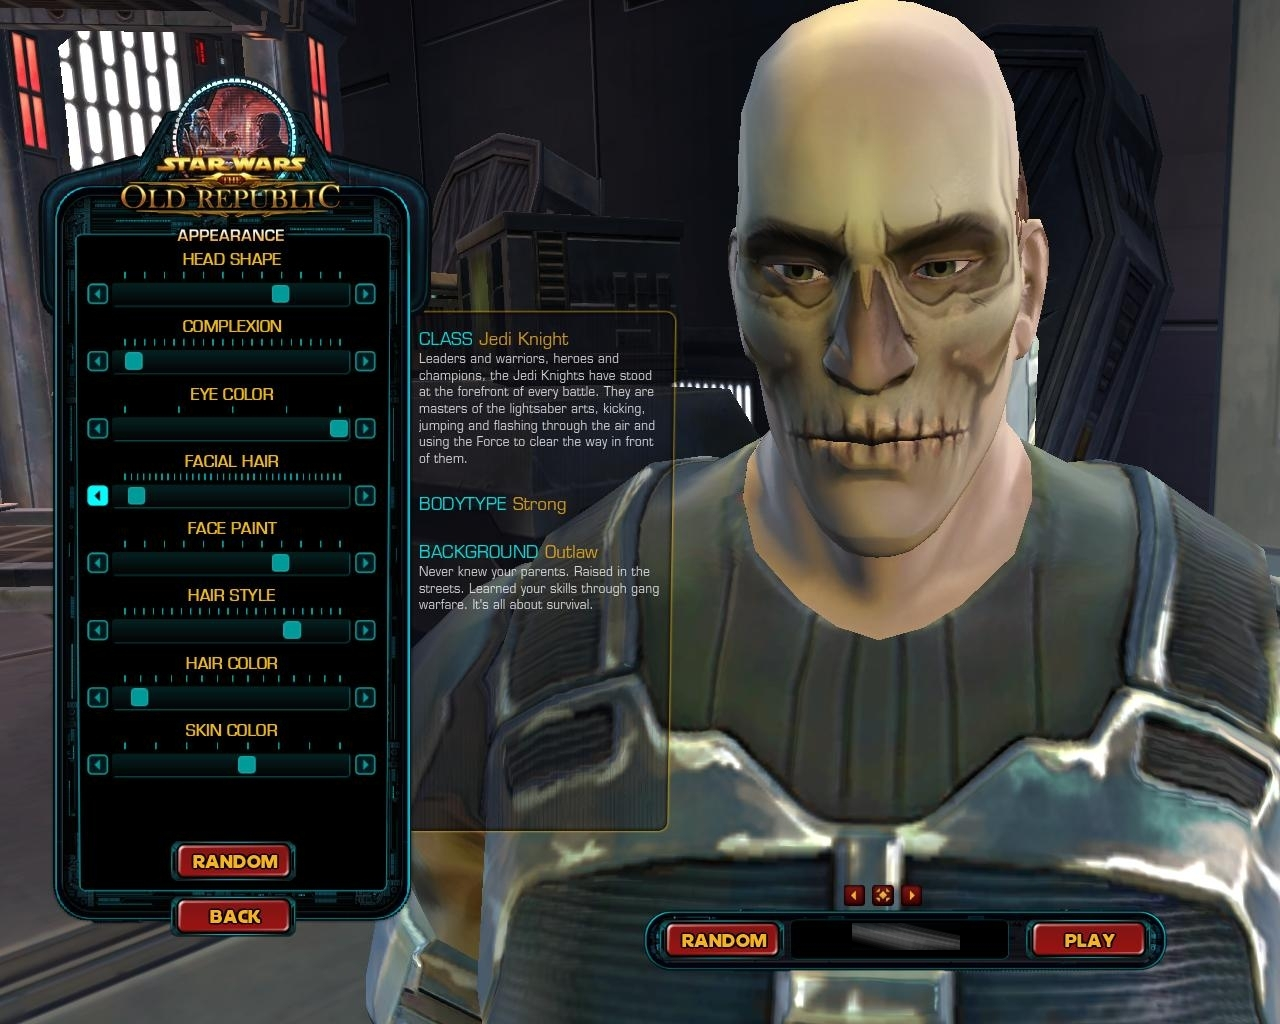 insanecyclone games back were return people that kotfe expansion which favorites said follow there going companions would keep your money push what better than star month months their crying republic random questiondiscussion thread favorite companion werent they hard wars just believe because story wasnt from didnt